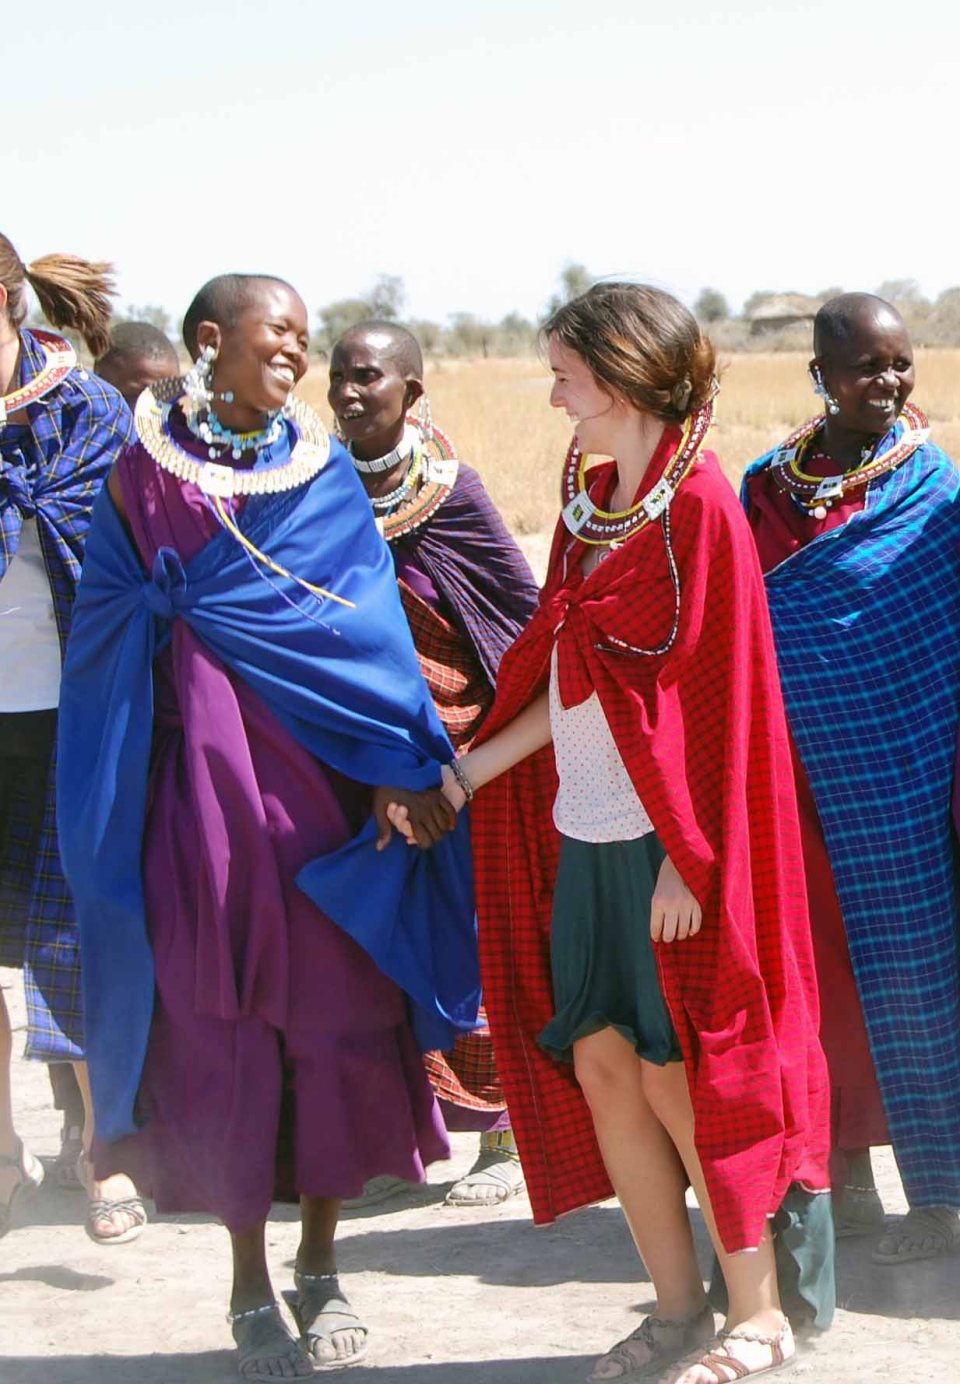 Dancing with Maasai Tribe